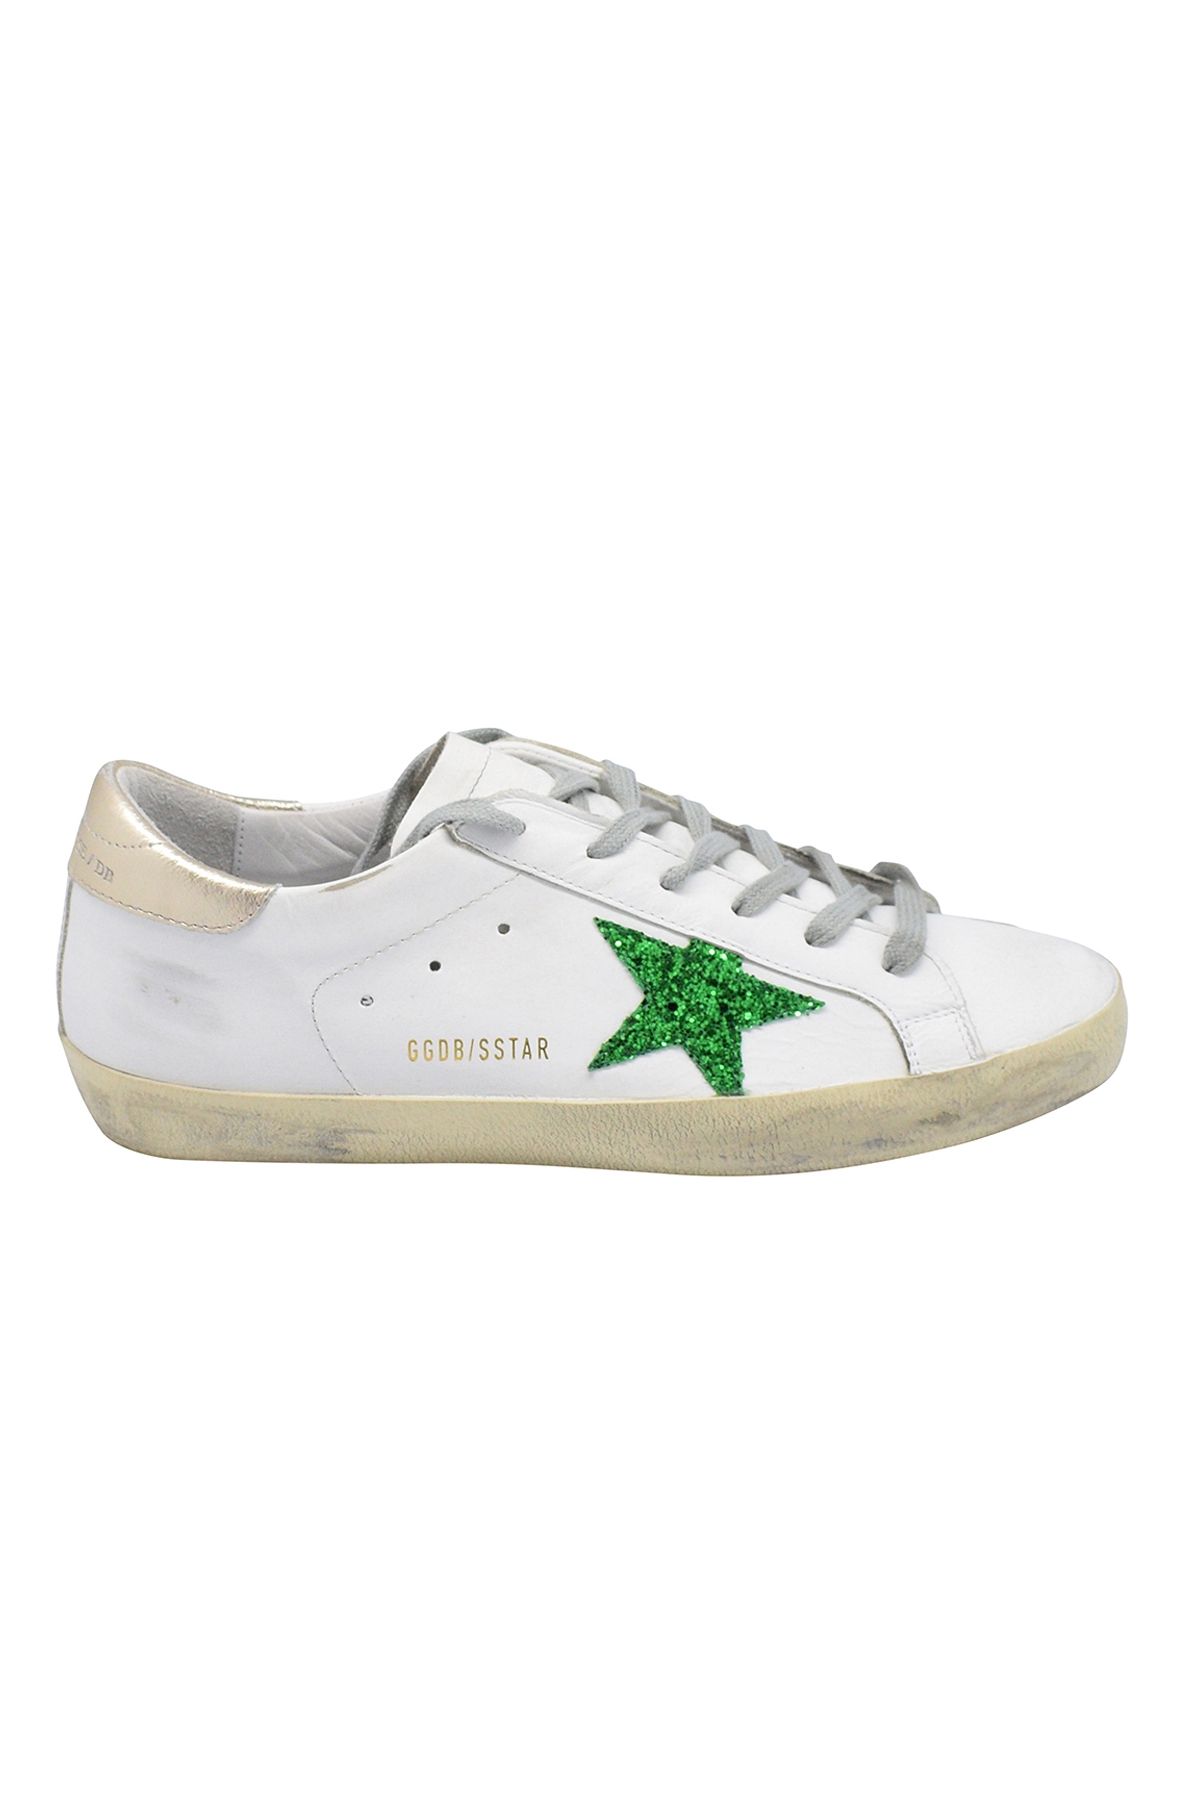 Golden Goose Superstar lace-up sneakers in white leather with green glittered star and gold leather heel tab